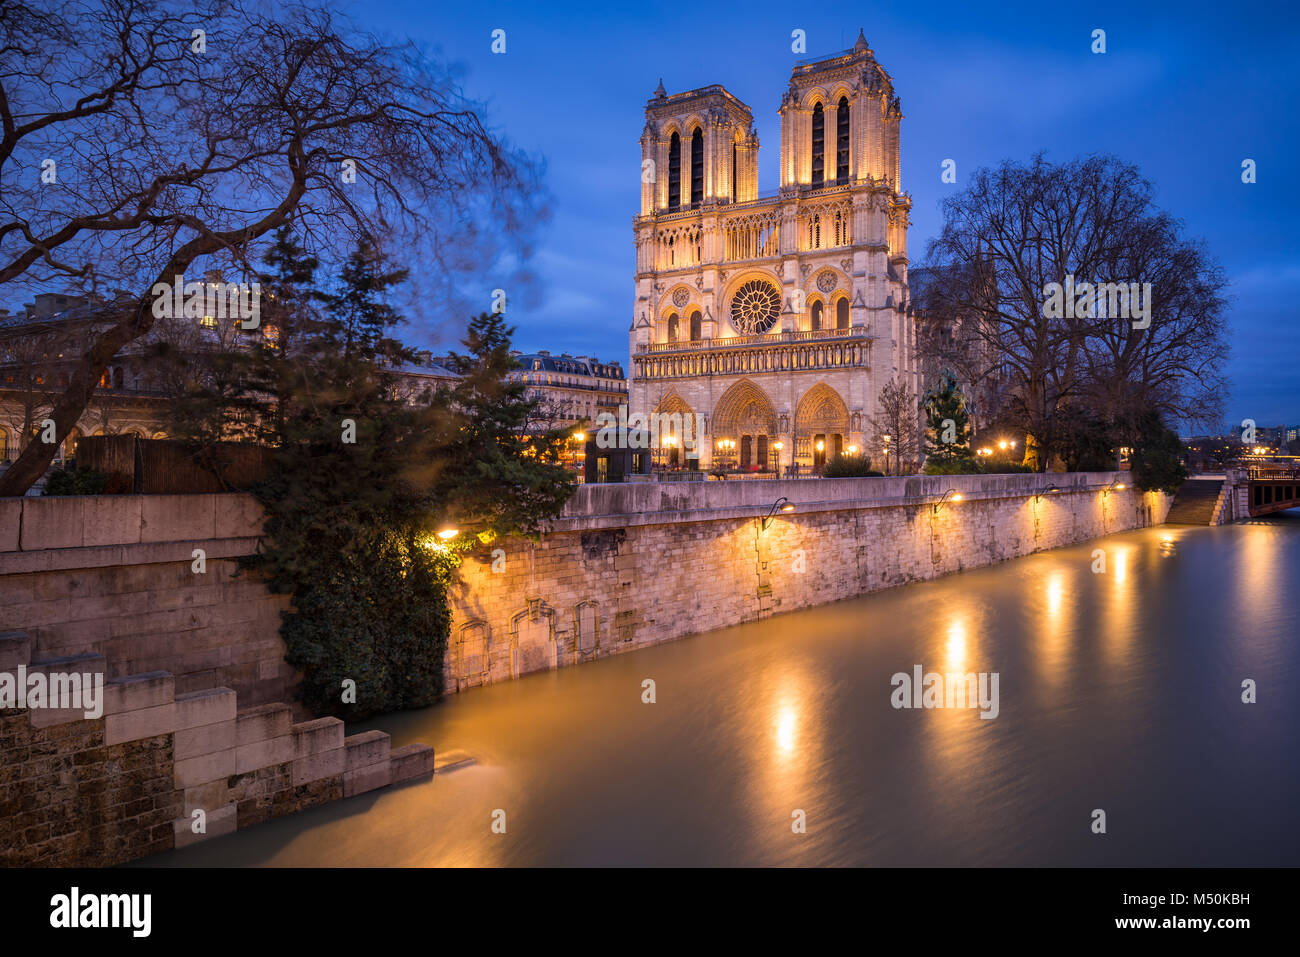 Notre Dame de Paris Catheral at dusk with the overflowing Seine River, 4th Arrondissement, Paris, France - Stock Image